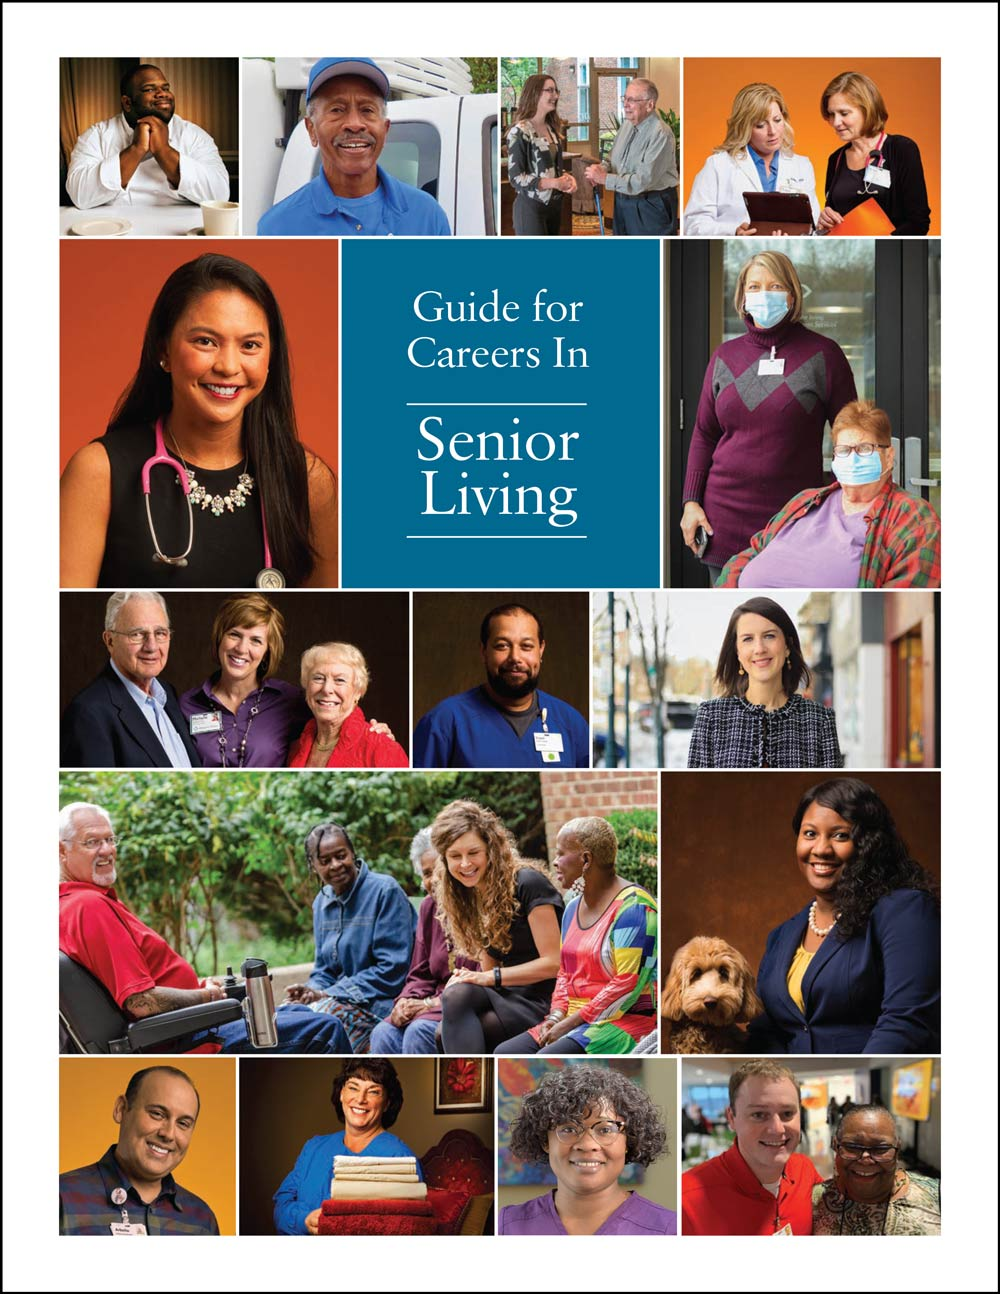 Senior Care Careers Guide by ERS